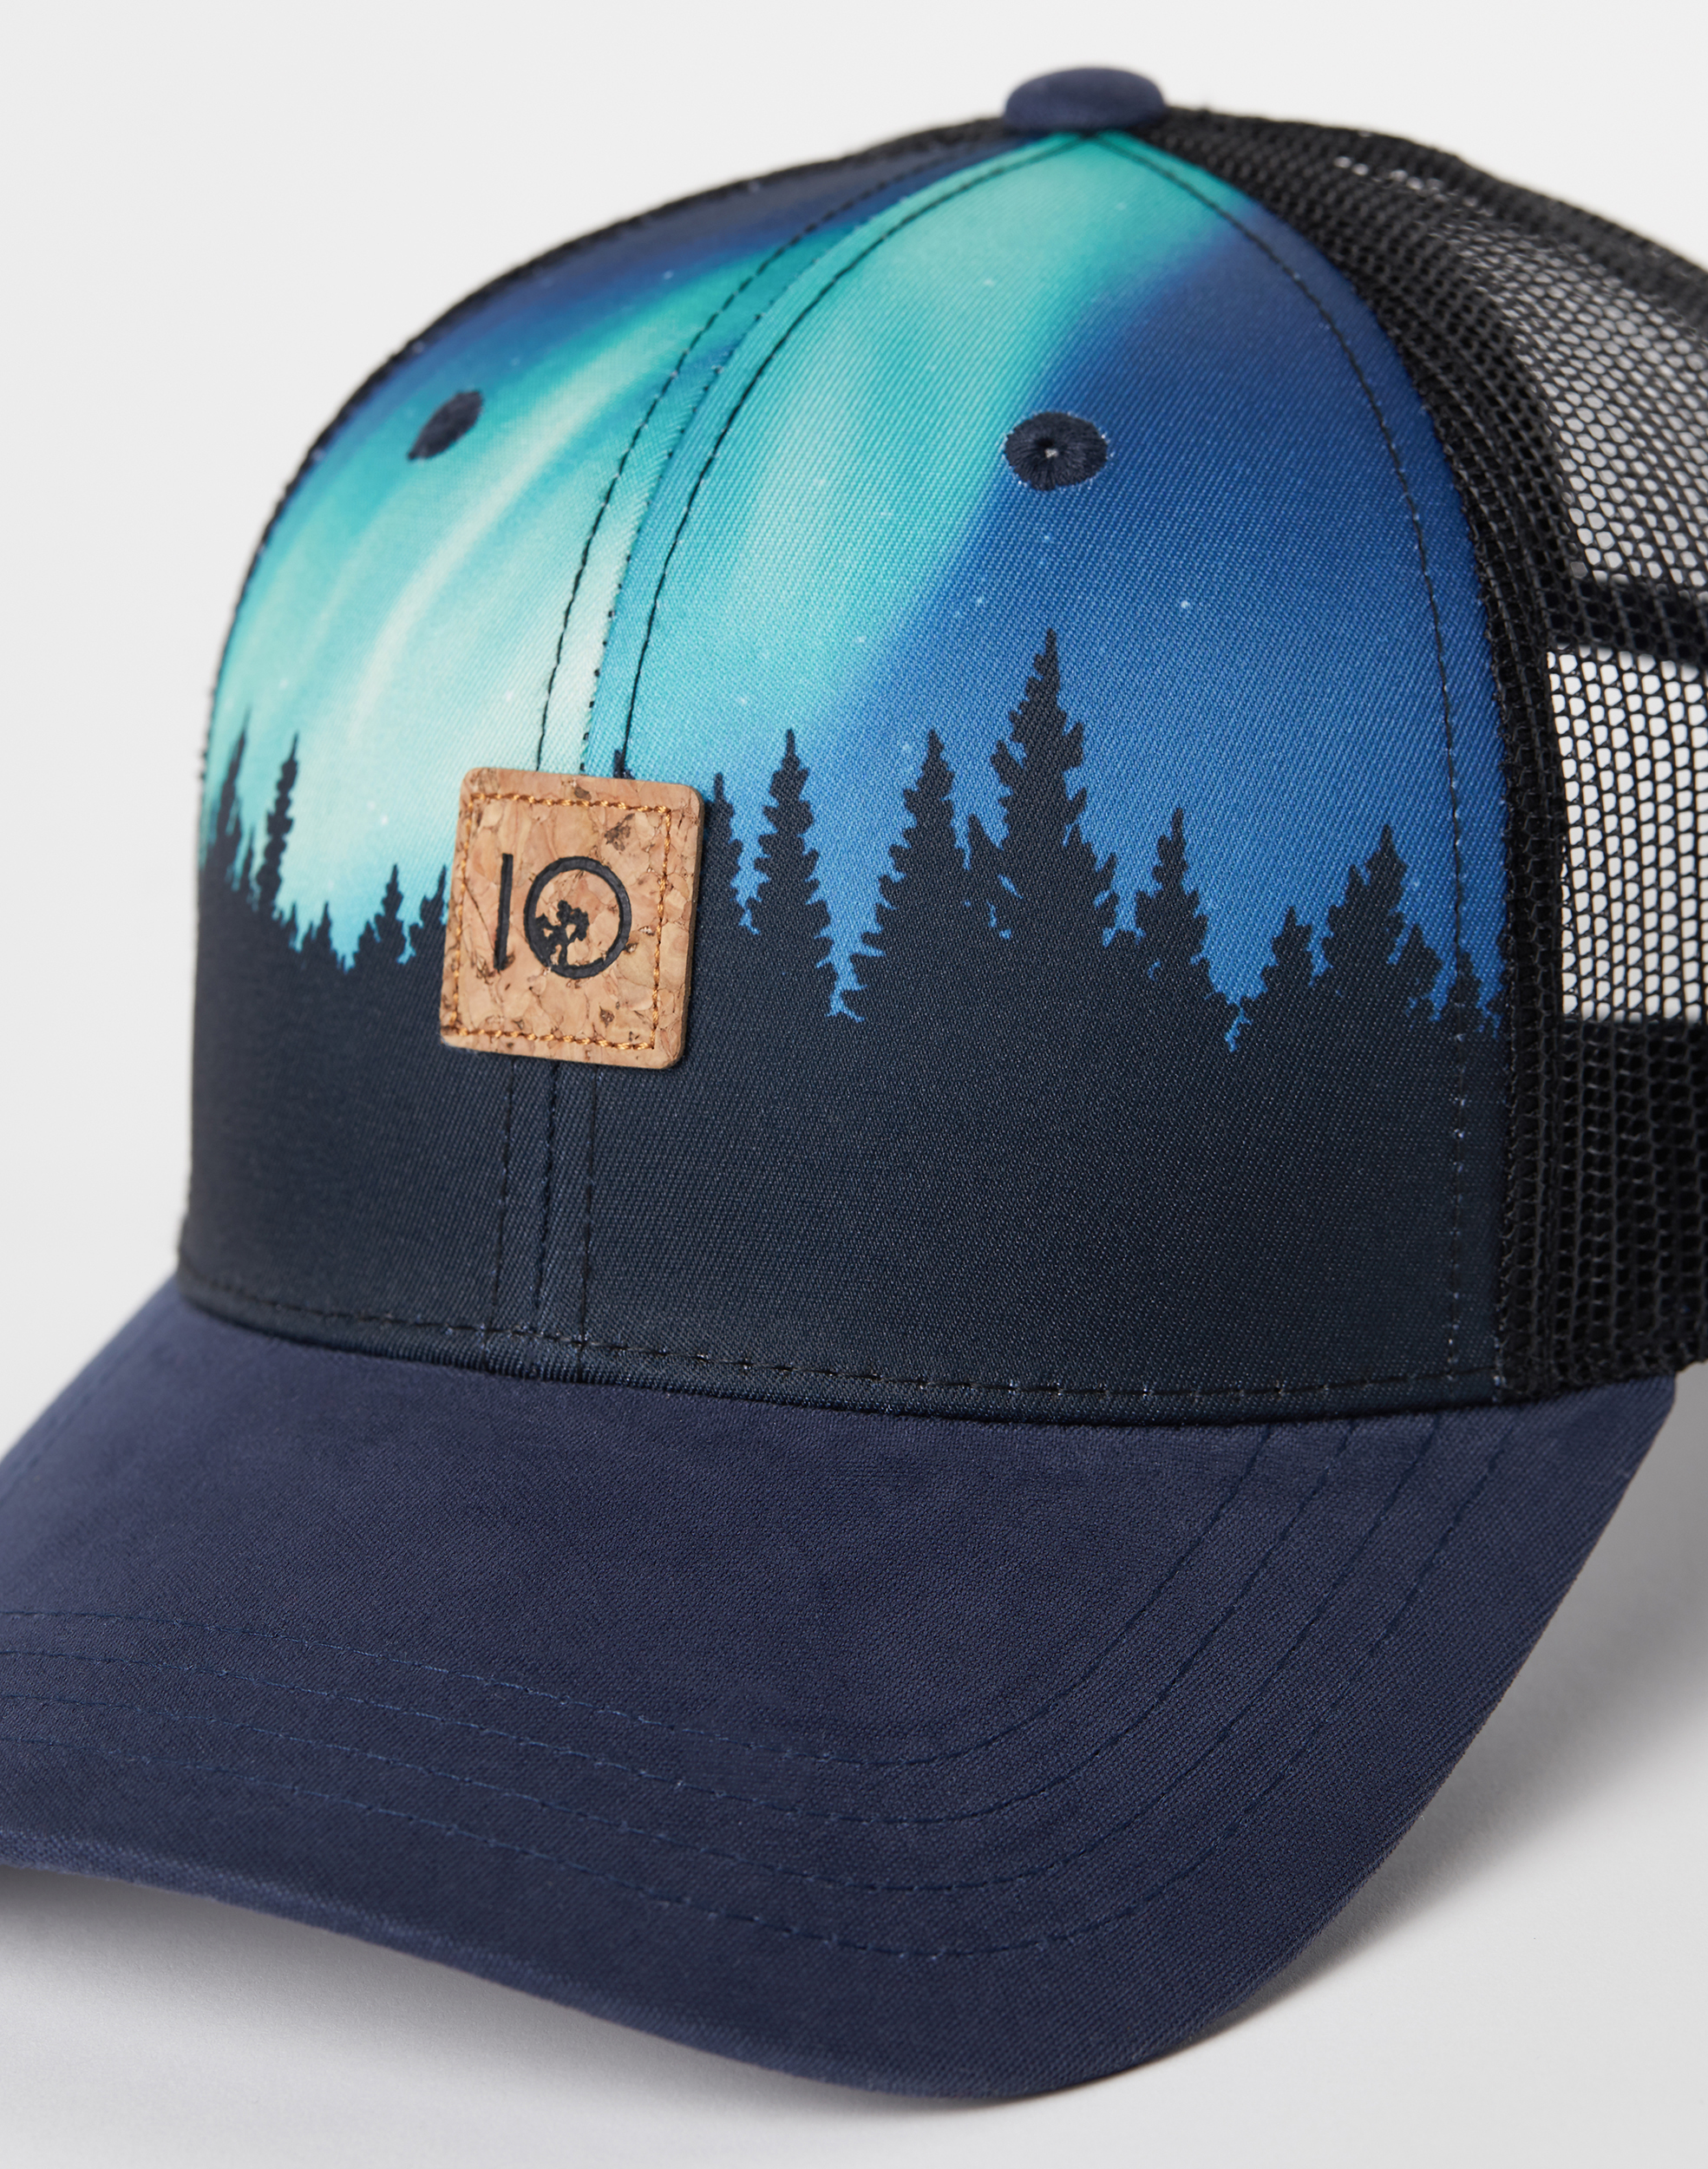 bfdfc9f1a73b5 ... promo code for tentree elevation trucker hat unisex bee90 ee480